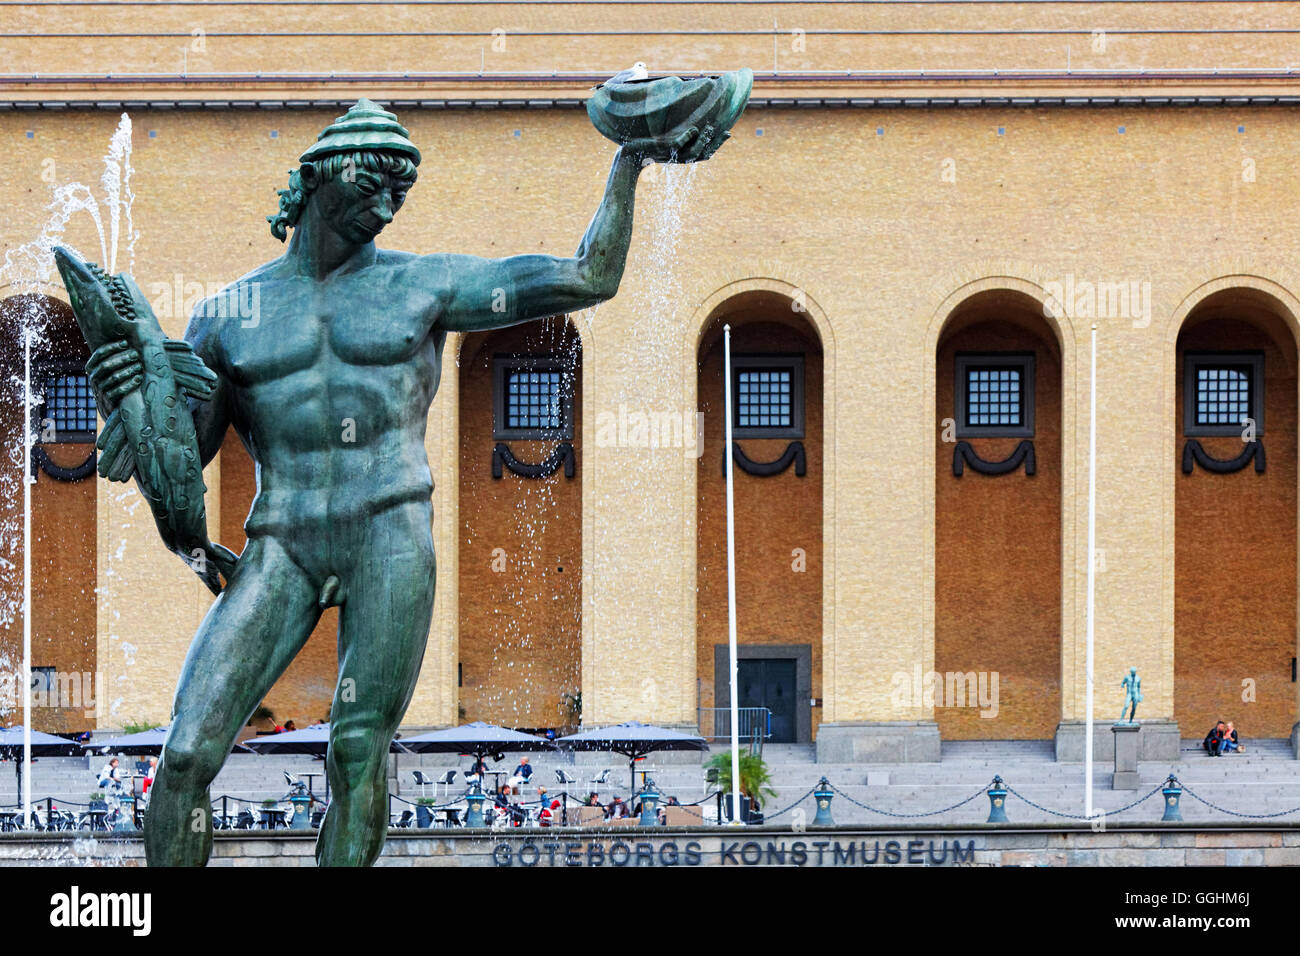 Poseidon statue from Carl Milles infront of the Museum of Art, Gothenburg, Sweden - Stock Image